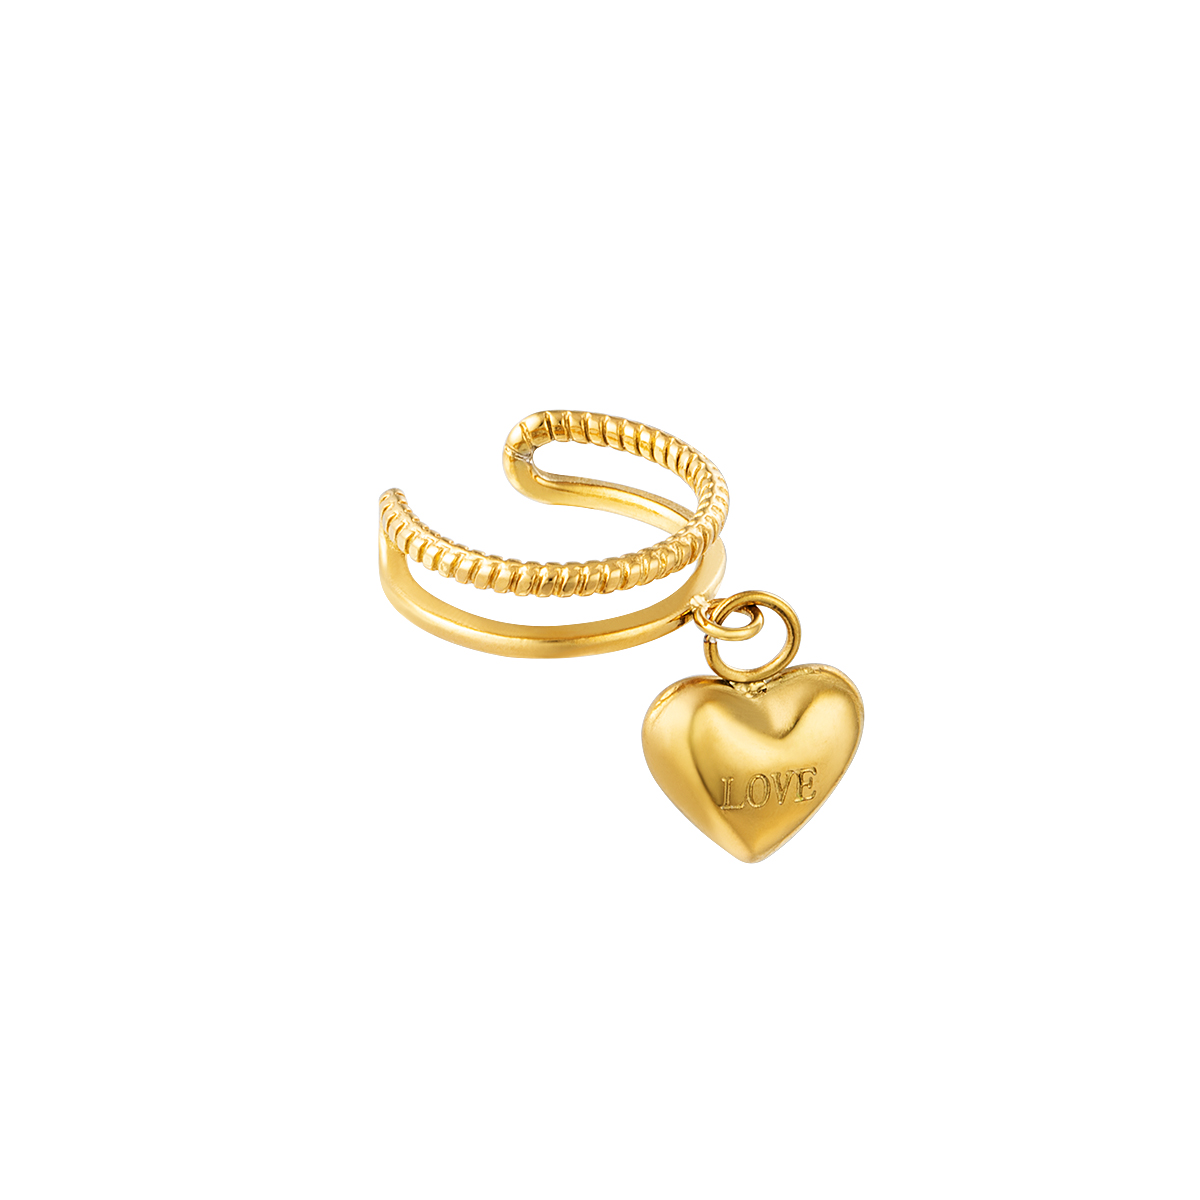 Double stainless steel earcuff with little heart charm